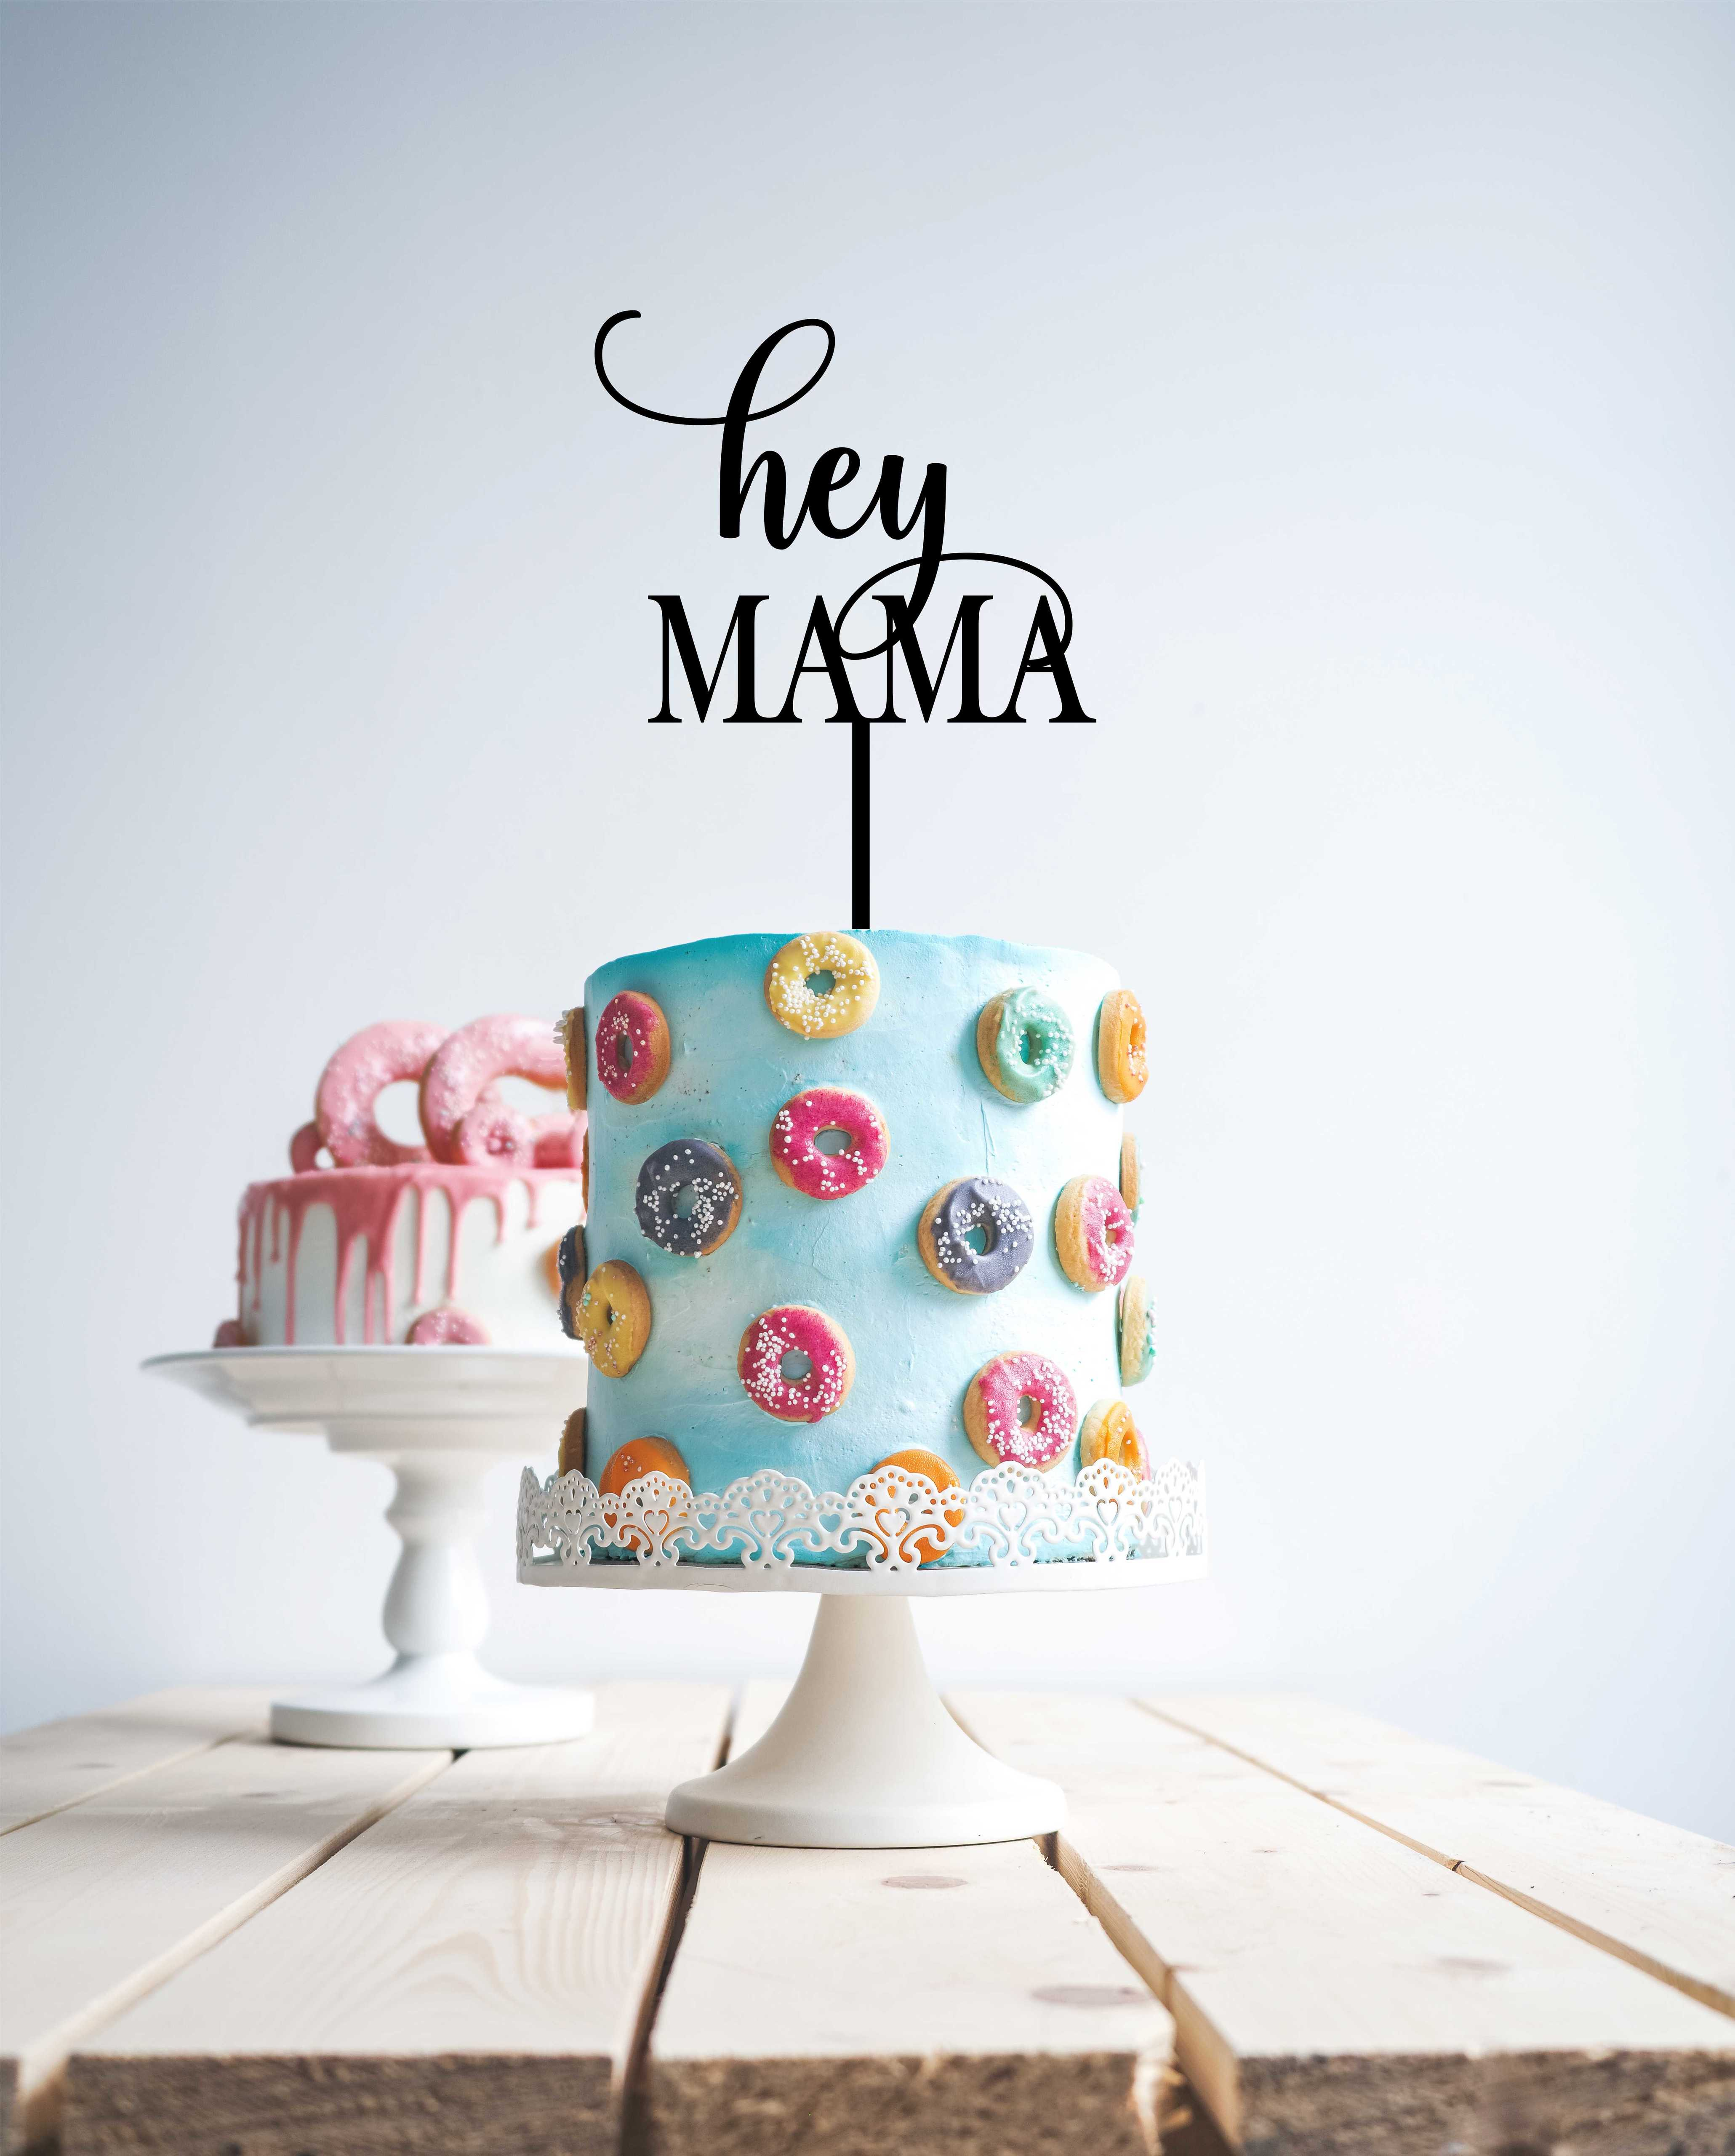 Hey Mama - baby shower  (thinner font) - Wood Cake Topper / wooden topper